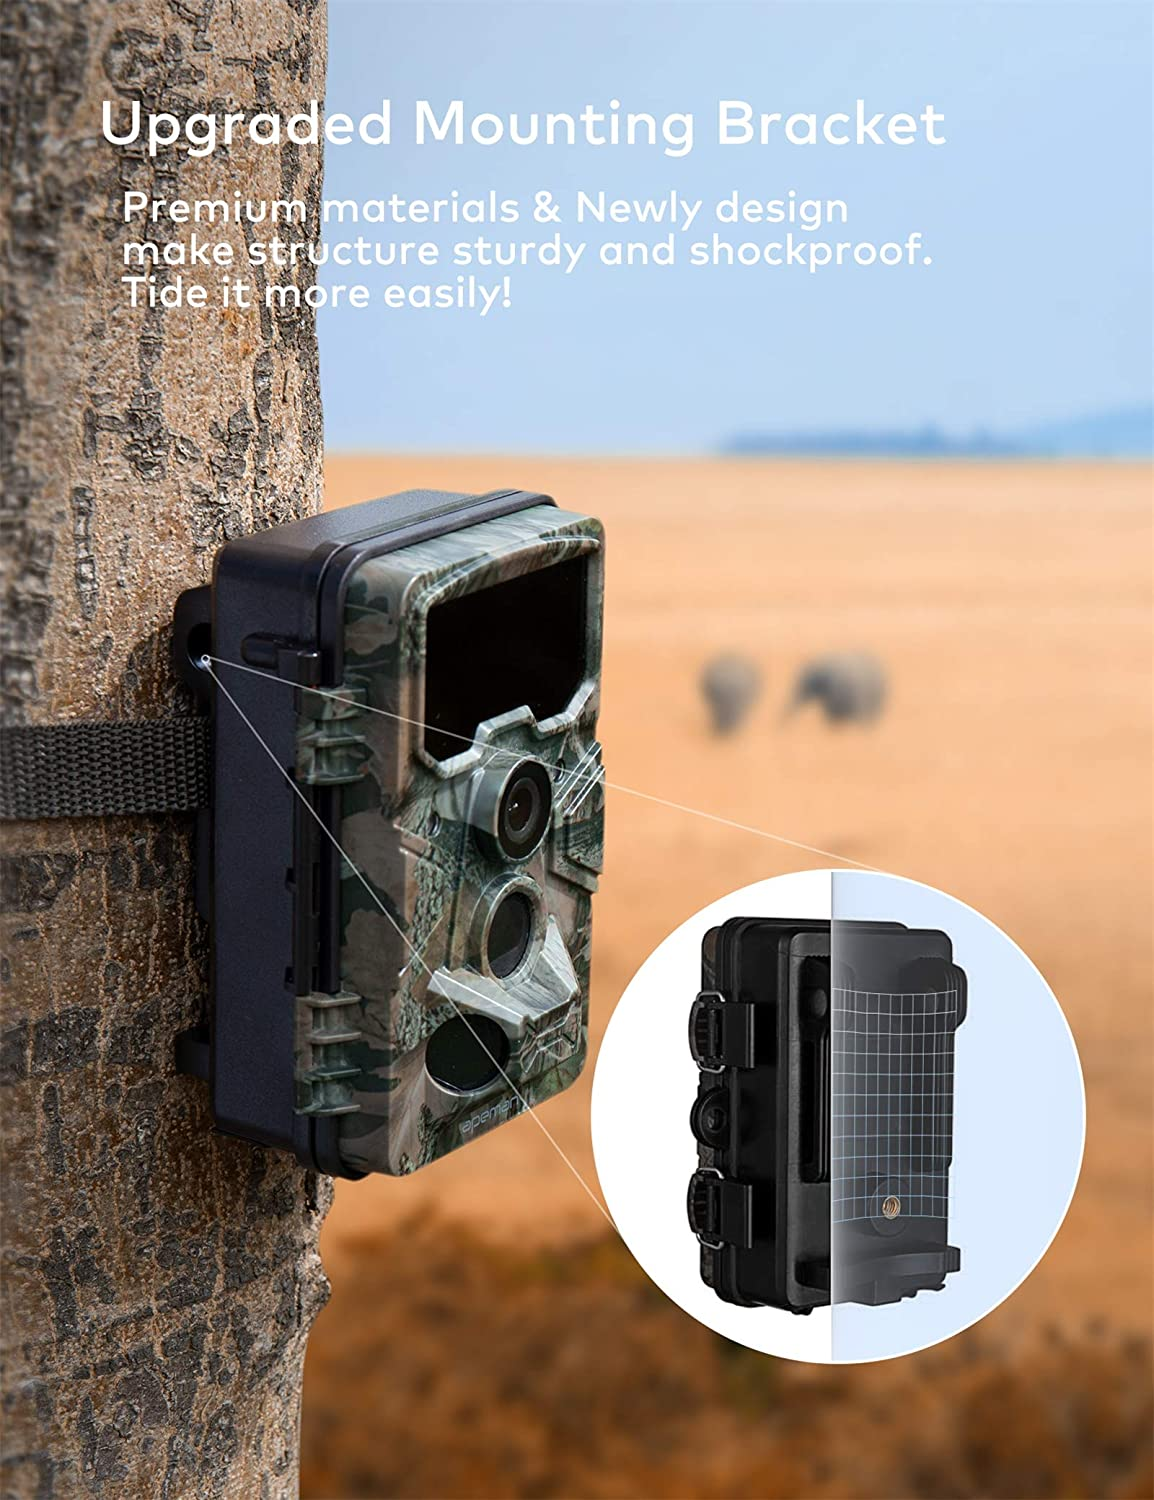 116/° Wide-Angle Lens 65ft Trigger Distance Game Camera for House Security and Wildlife Monitoring APEMAN Trail Camera 20MP 1080P with 16GB TF Card 120/° Detection Range